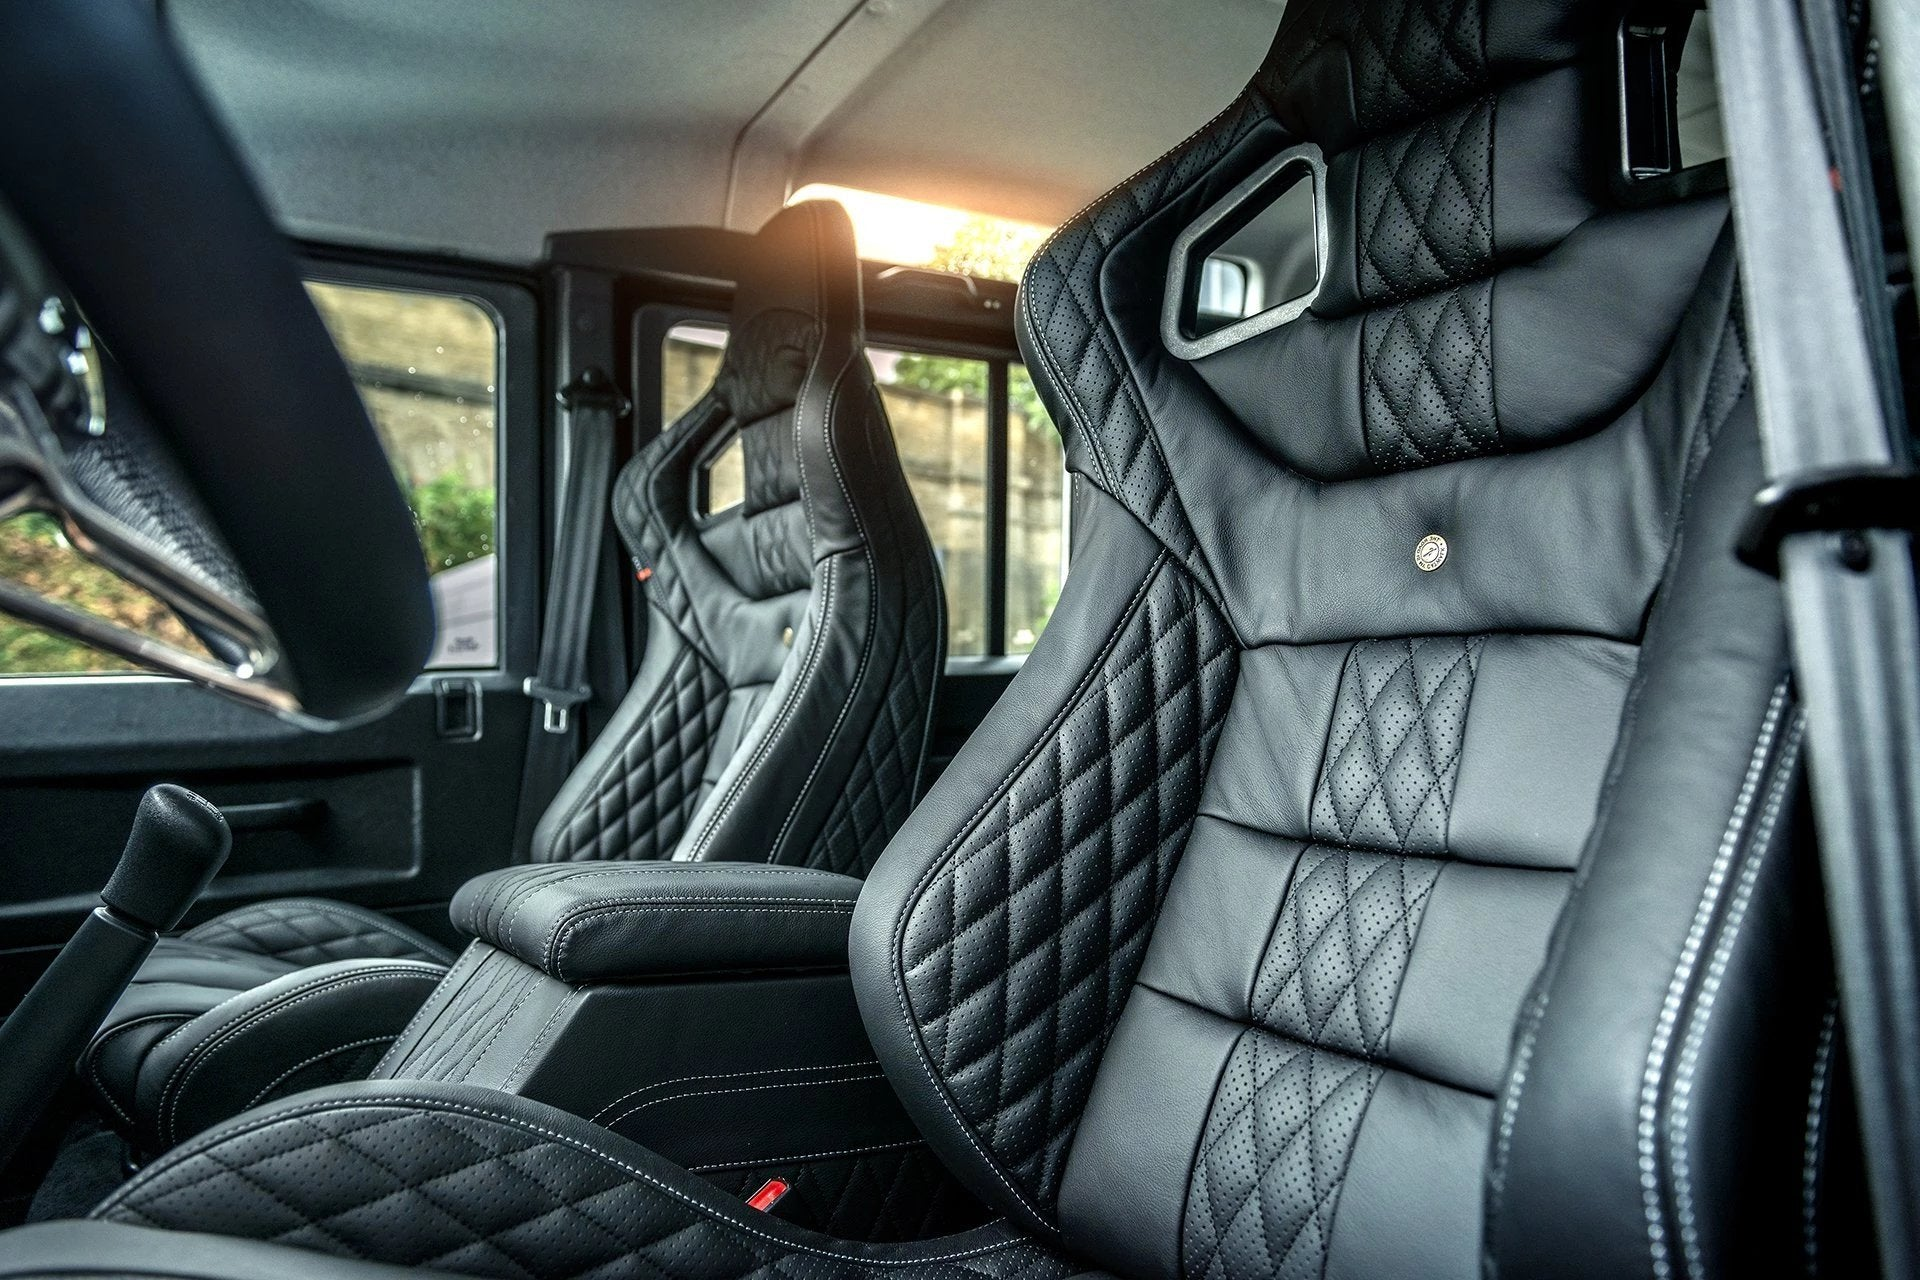 Land Rover Defender 110 (1991-2016) Leather Interior by Chelsea Truck Company - Image 1496